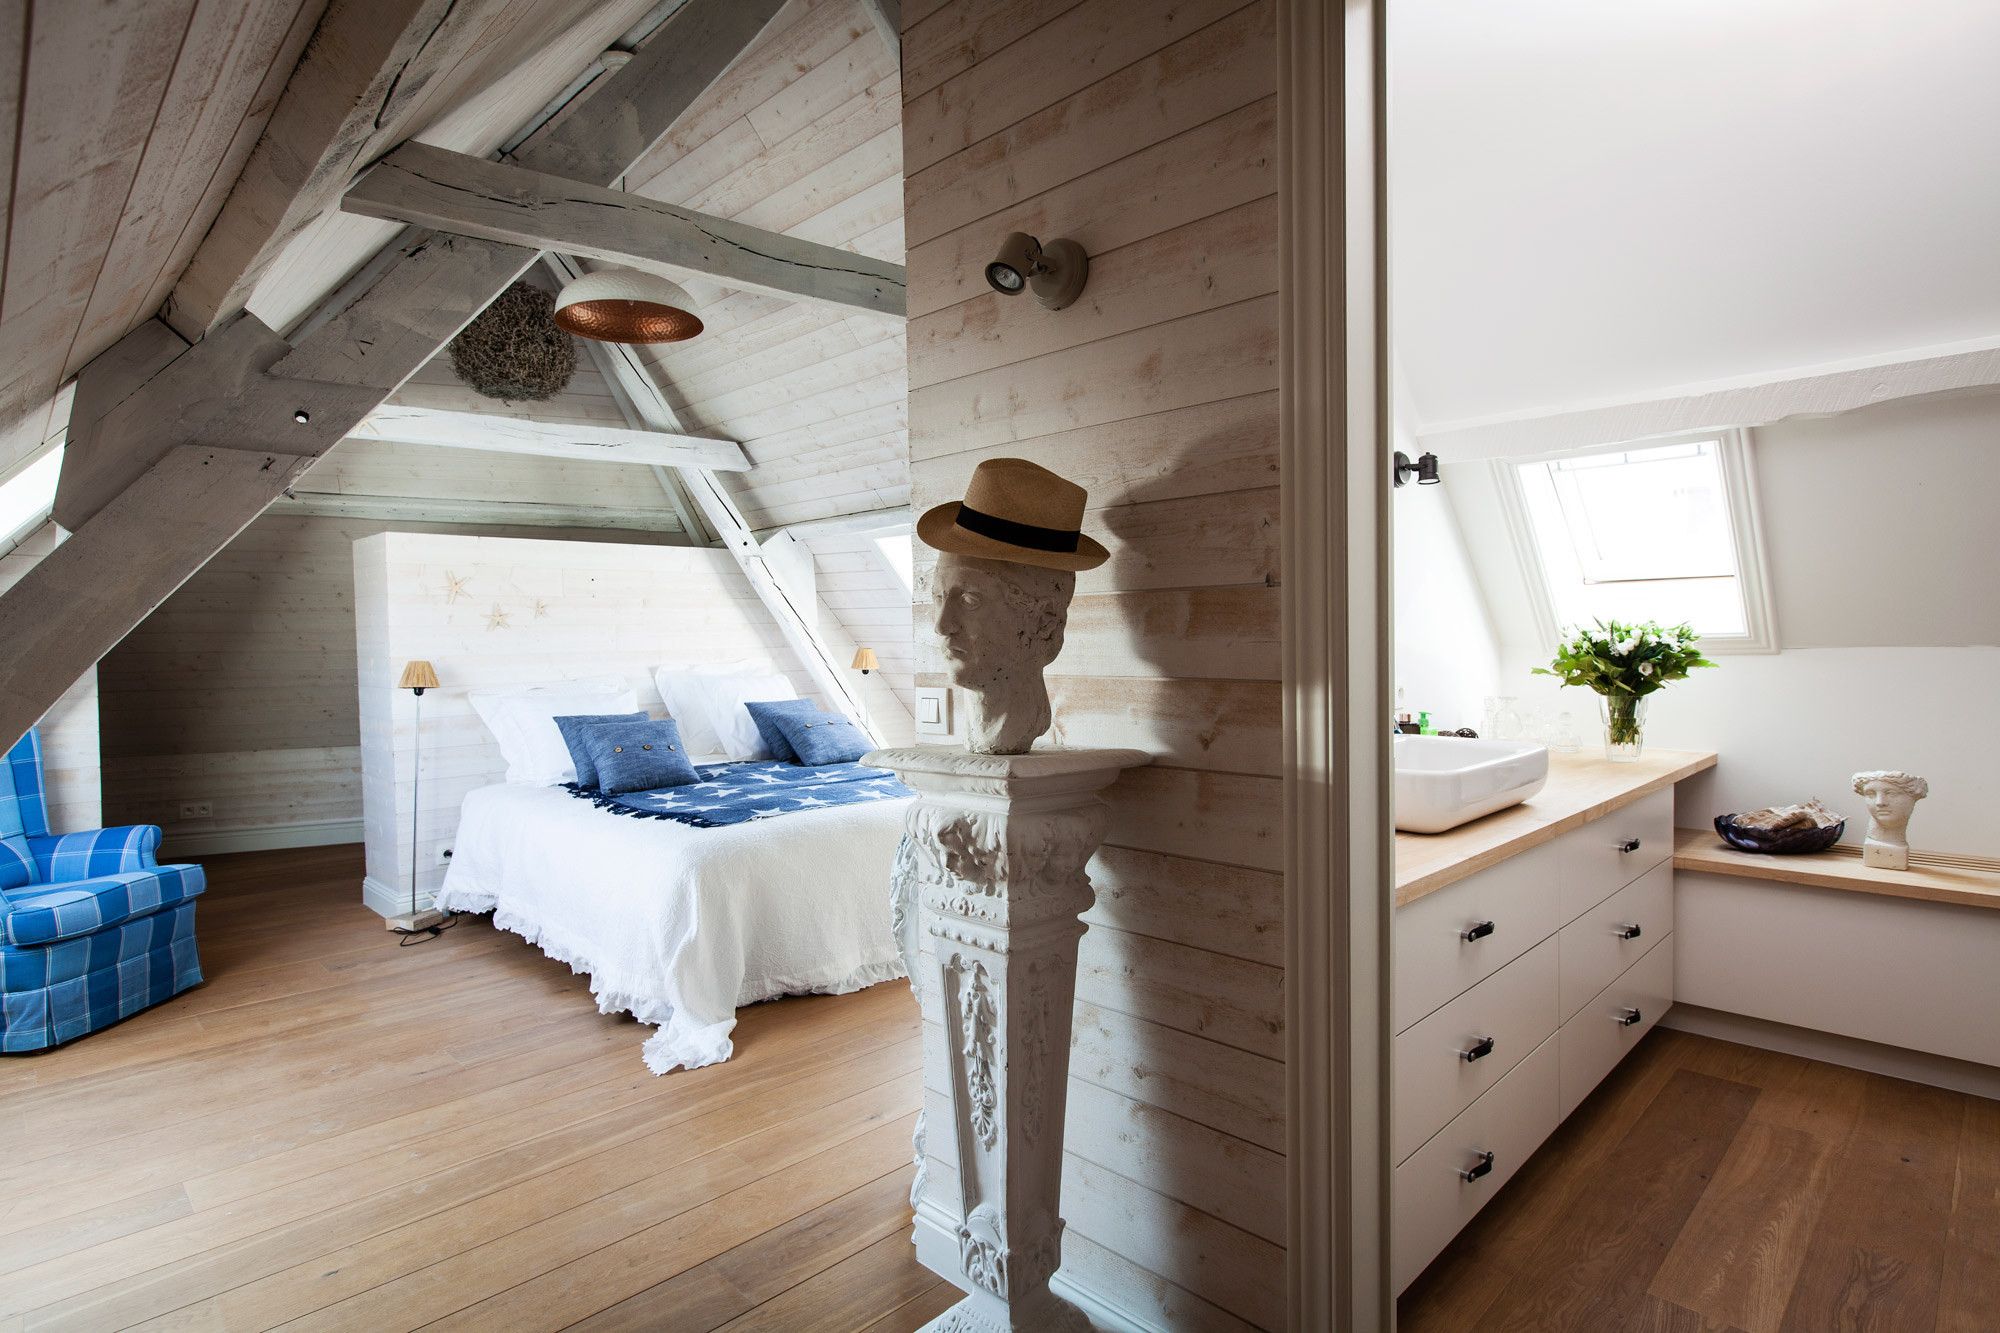 A perfect romantic stay in the historic centre of Bruges at bed and breakfast Maison Amodio. This is the room Knokke-le-Zoute.